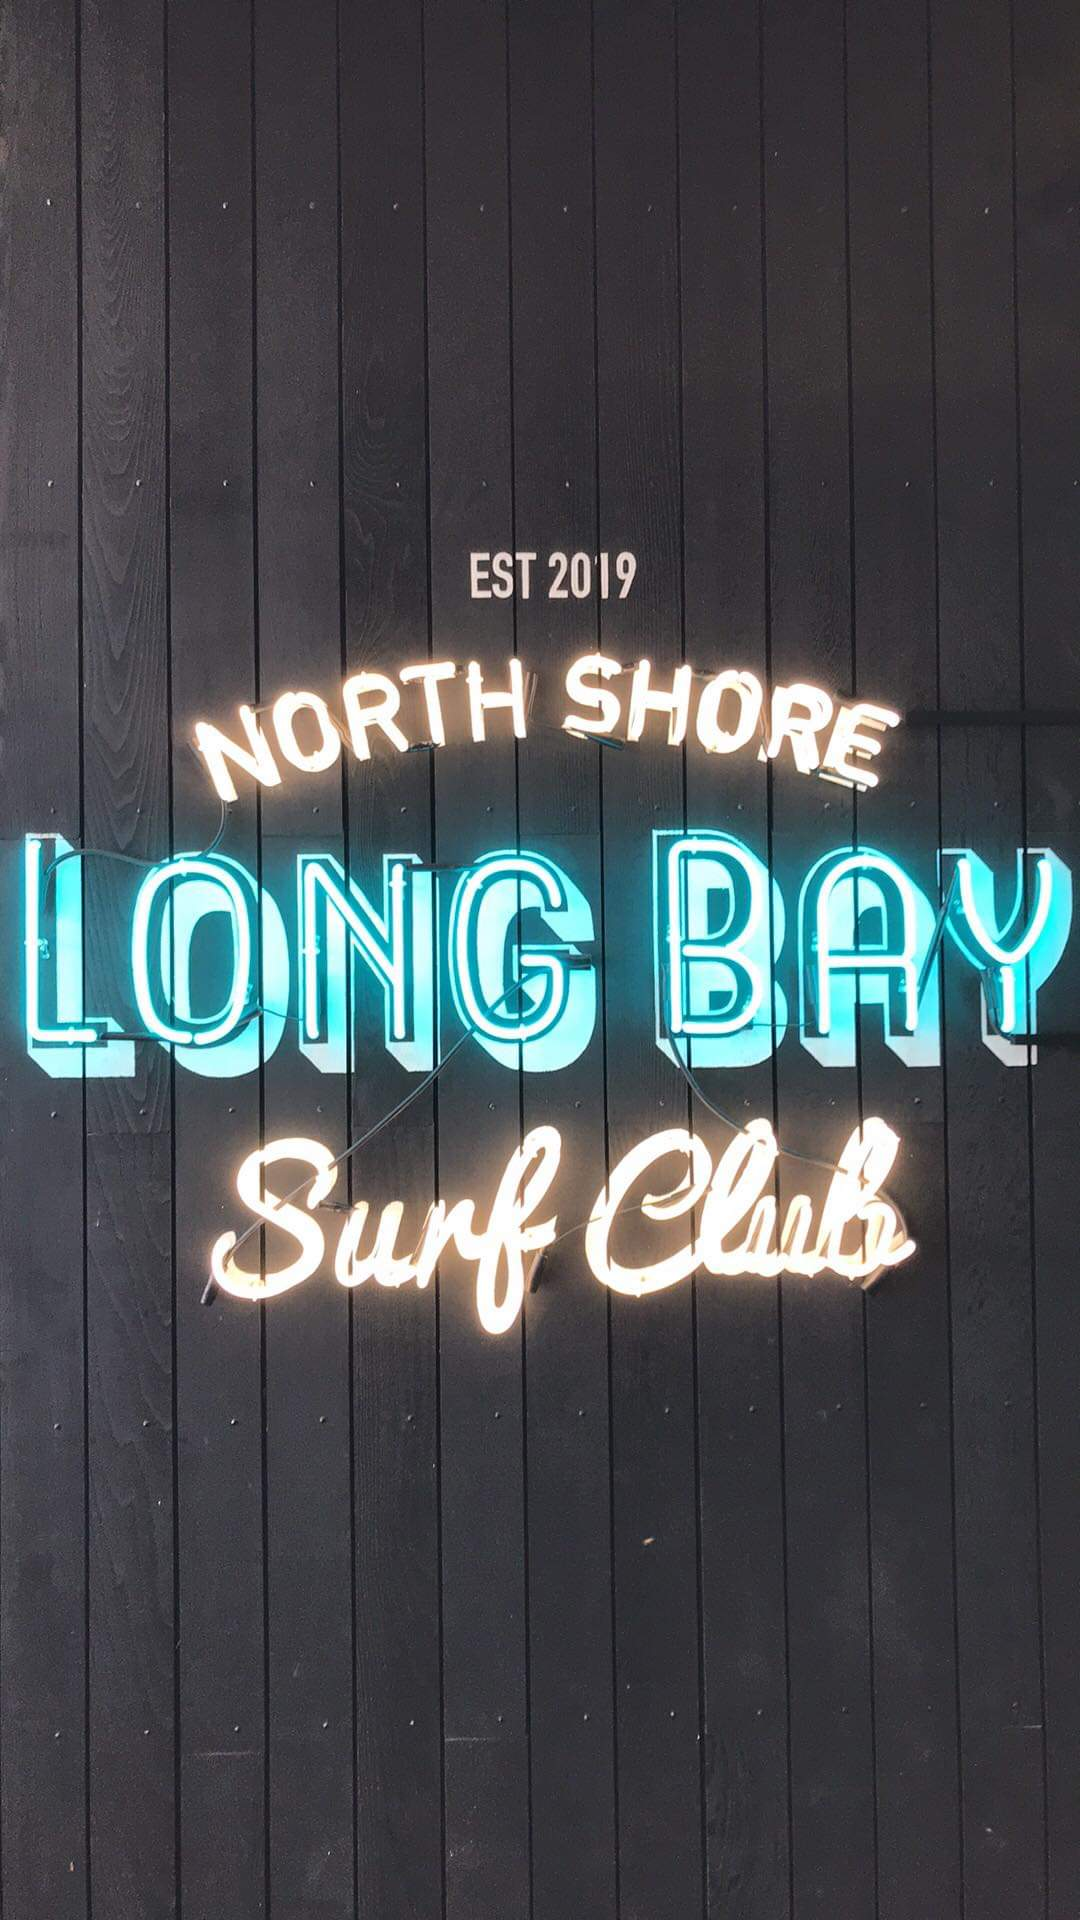 Long Bay Surf Club